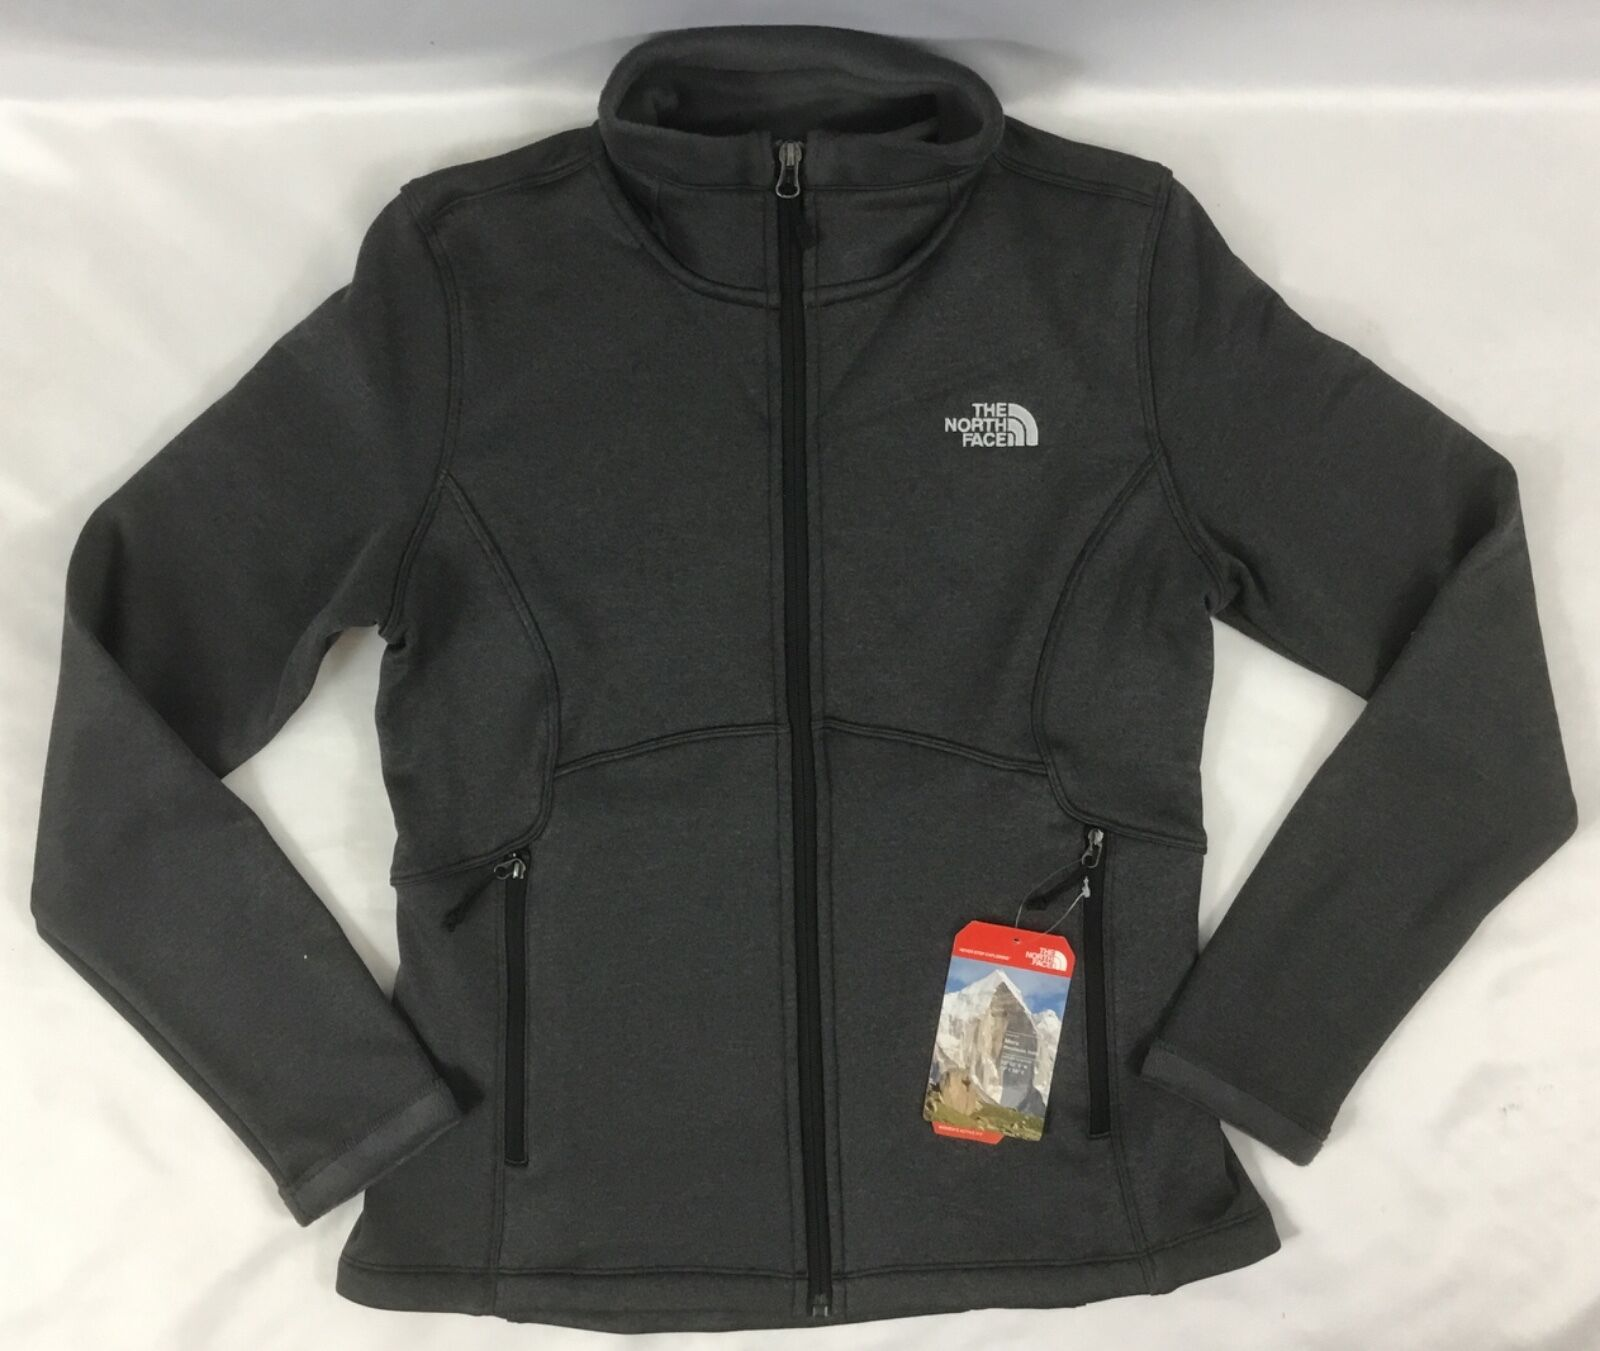 The North Face Womens Agave Full Zip Jacket Black Size S ...